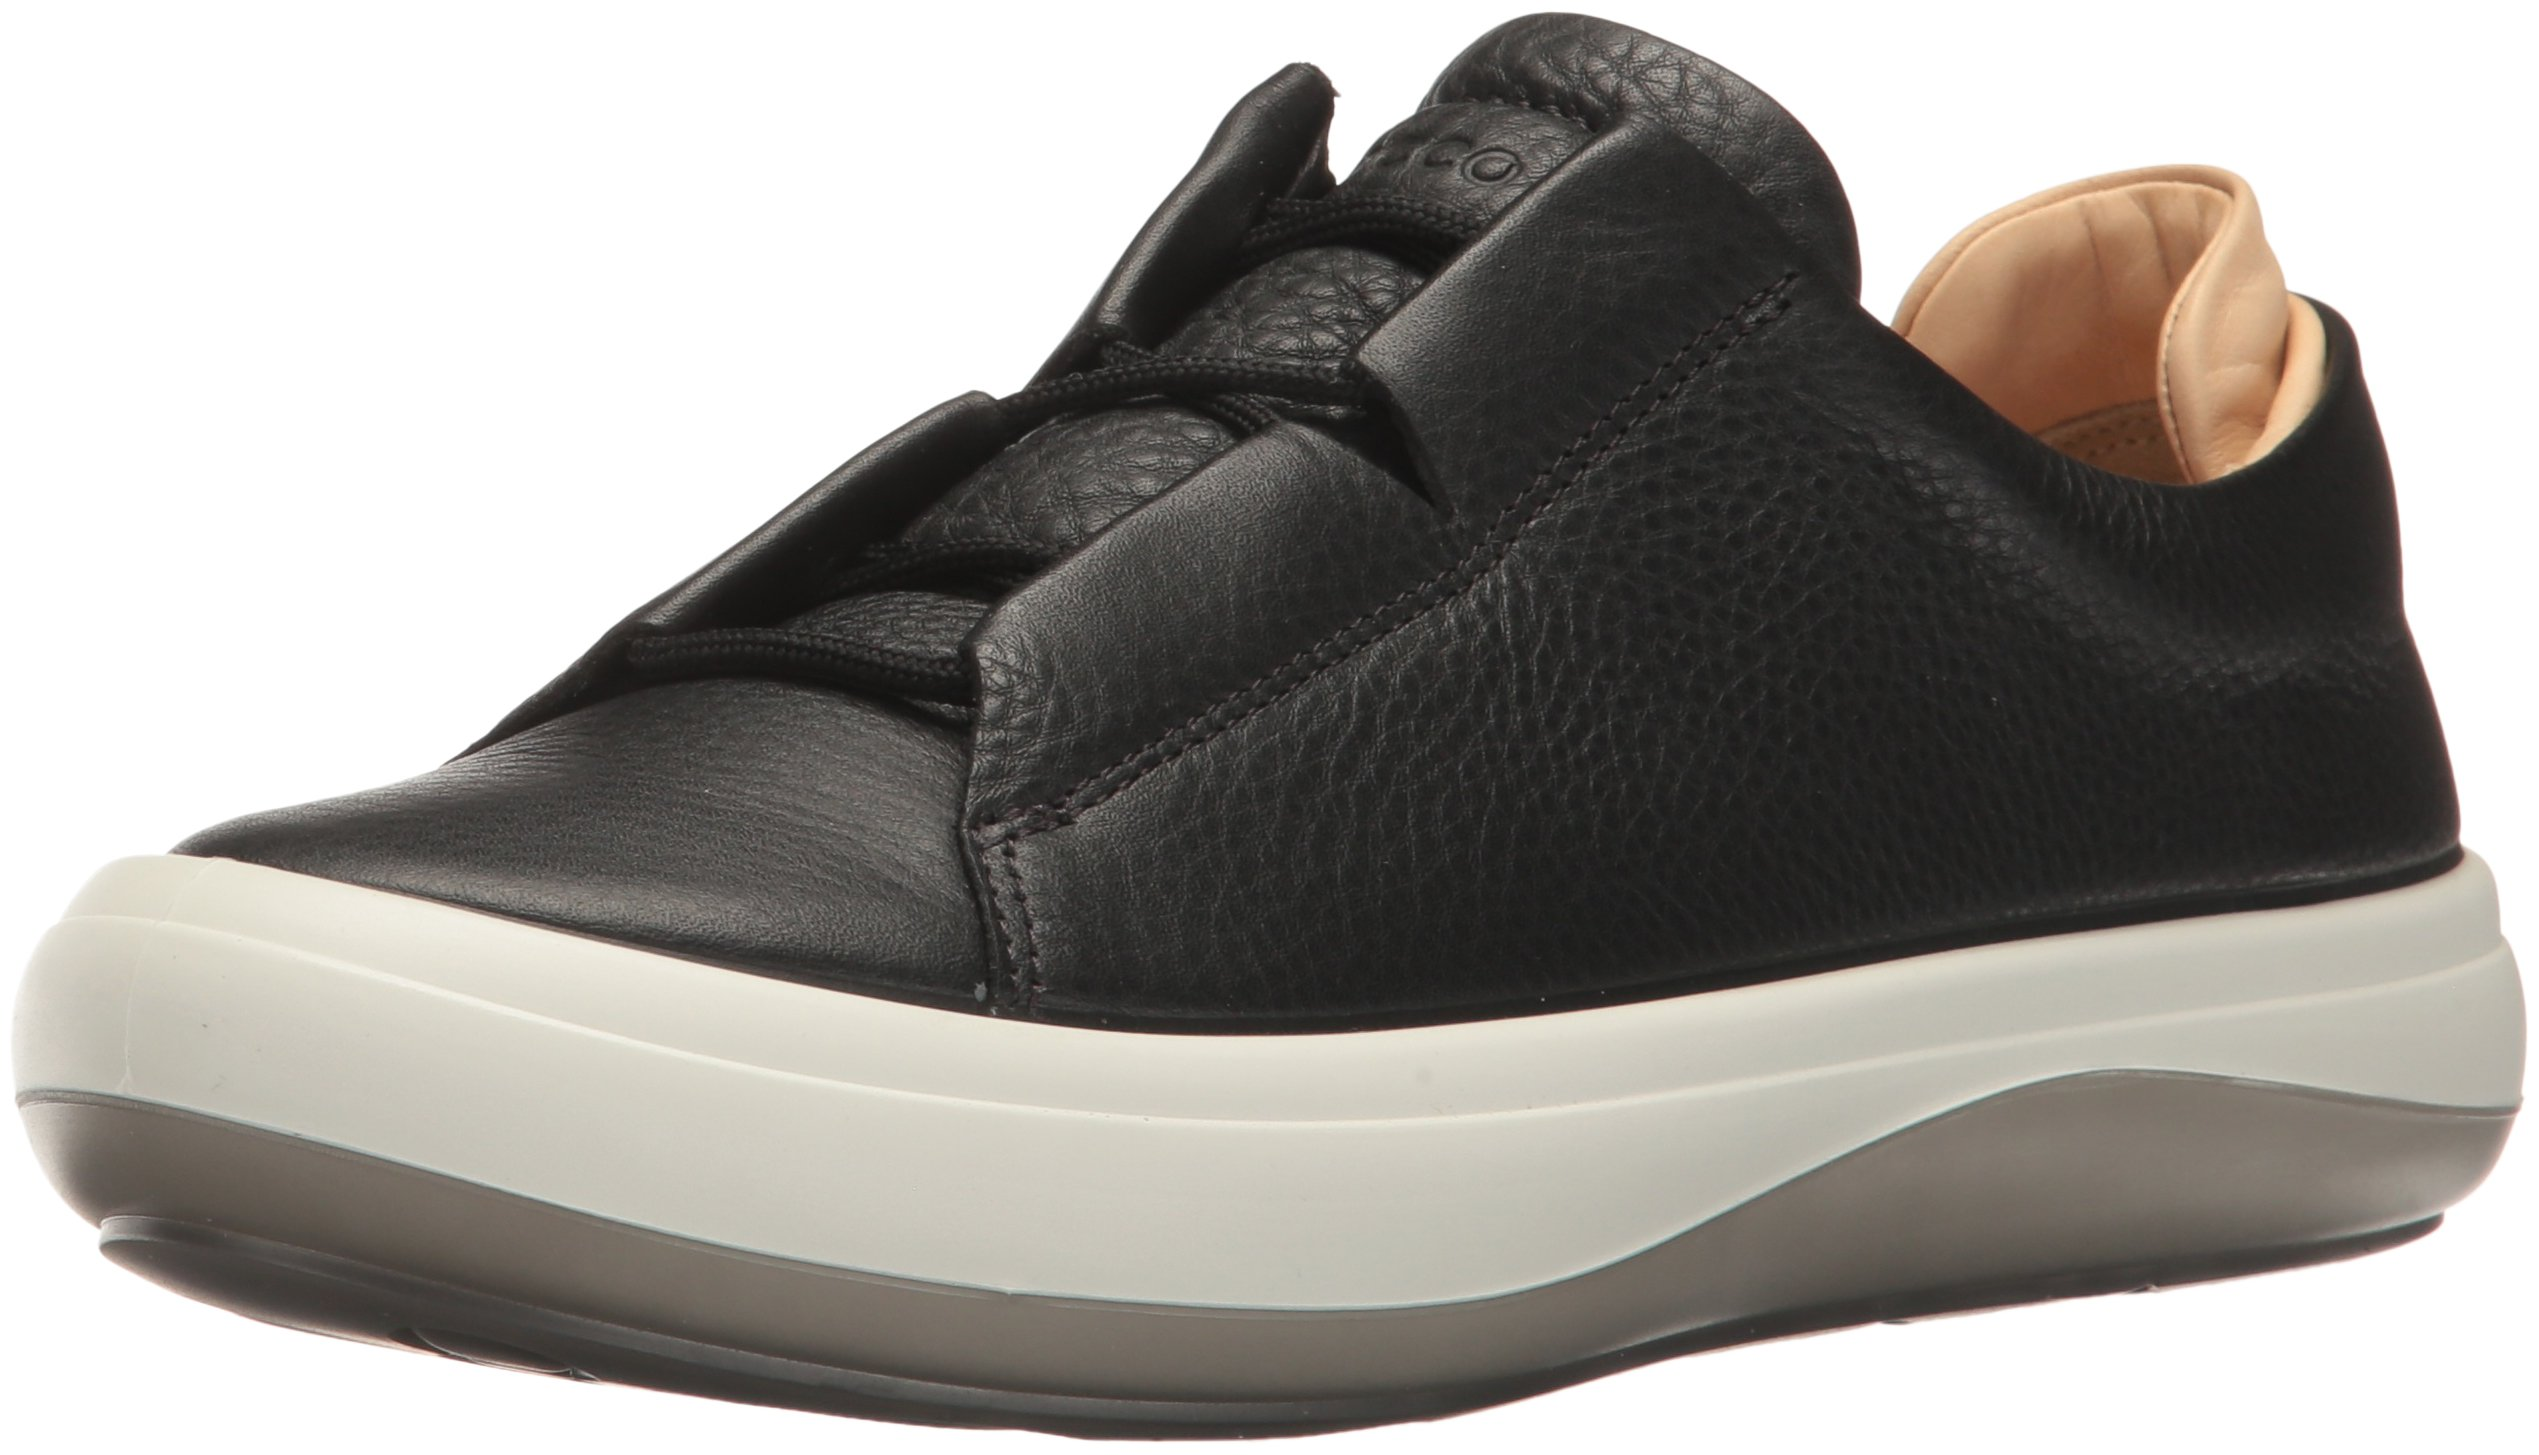 ECCO Women's Women's Kinhin Tie Fashion Sneaker, Black/Veg Tan, 36 EU / 5-5.5 US